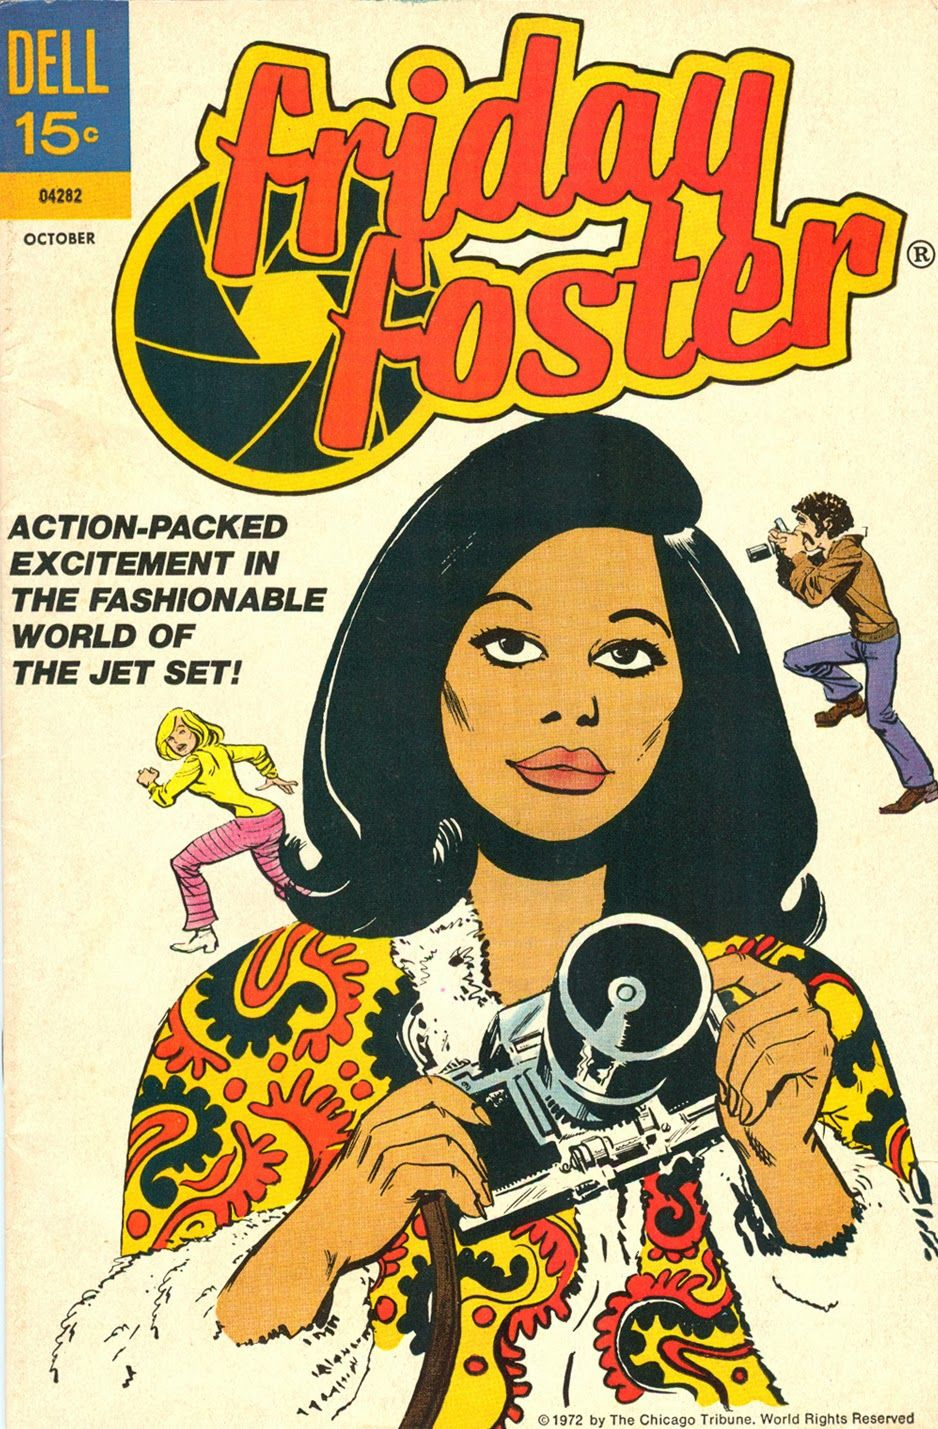 Sequential Crush: Unlikely Romance - Dell's Friday Foster